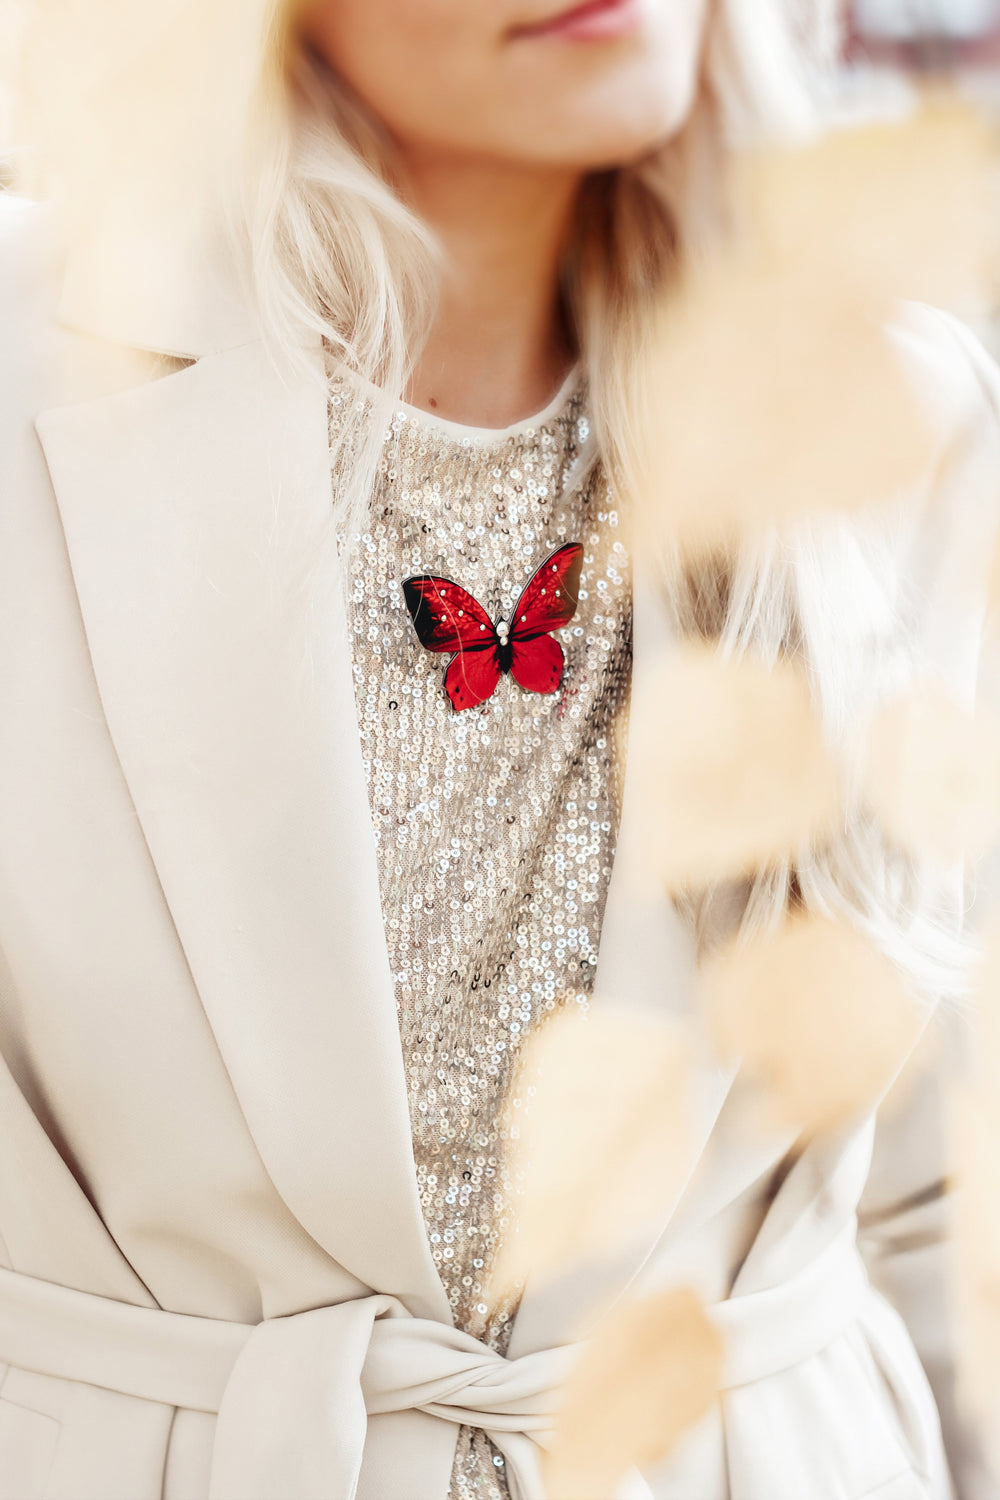 Partyfly Butterfly Brooch